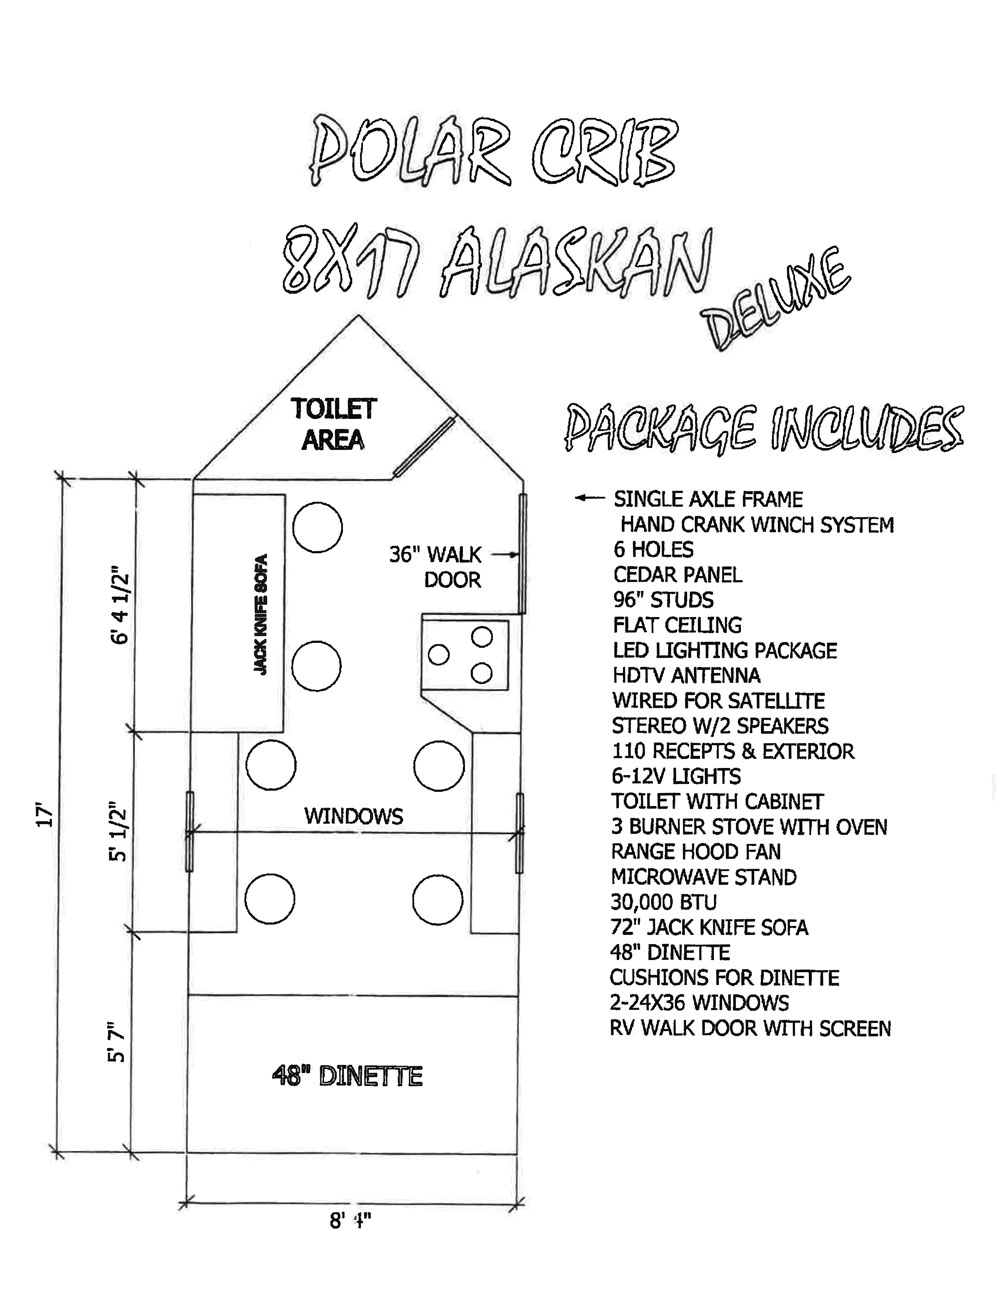 Polar Crib Fish Houses For Sale - ALL Campers - Camper ... on ice building, ice trailer plans, ice signs, iceshanty plans, ice houses on farms, ice houses in the 1800s, 8x10 ice shack plans, ice office, ice dogs, ice luge stand plans, indoor riding arena building plans, stable plans, ice landscaping, plant press plans, ice wedding, ice box plans, ice appliances, ice furniture, ice boat plans, rustic ice chest plans,